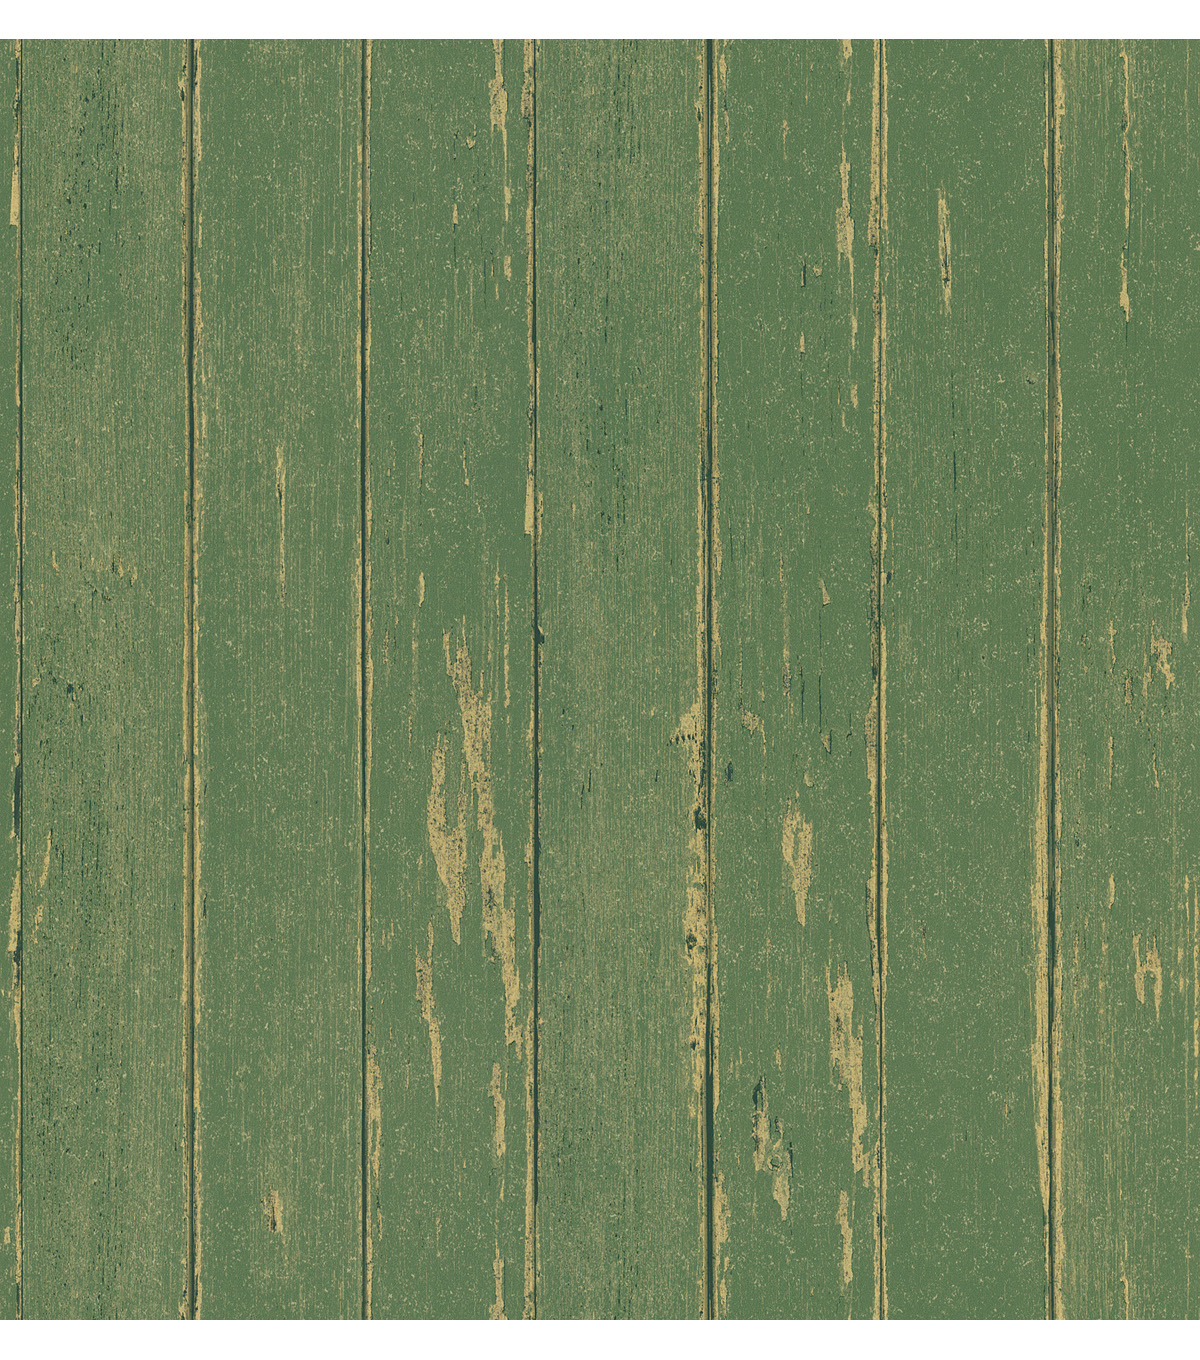 Yarmouth Green Rustic Wood Paneling Wallpaper